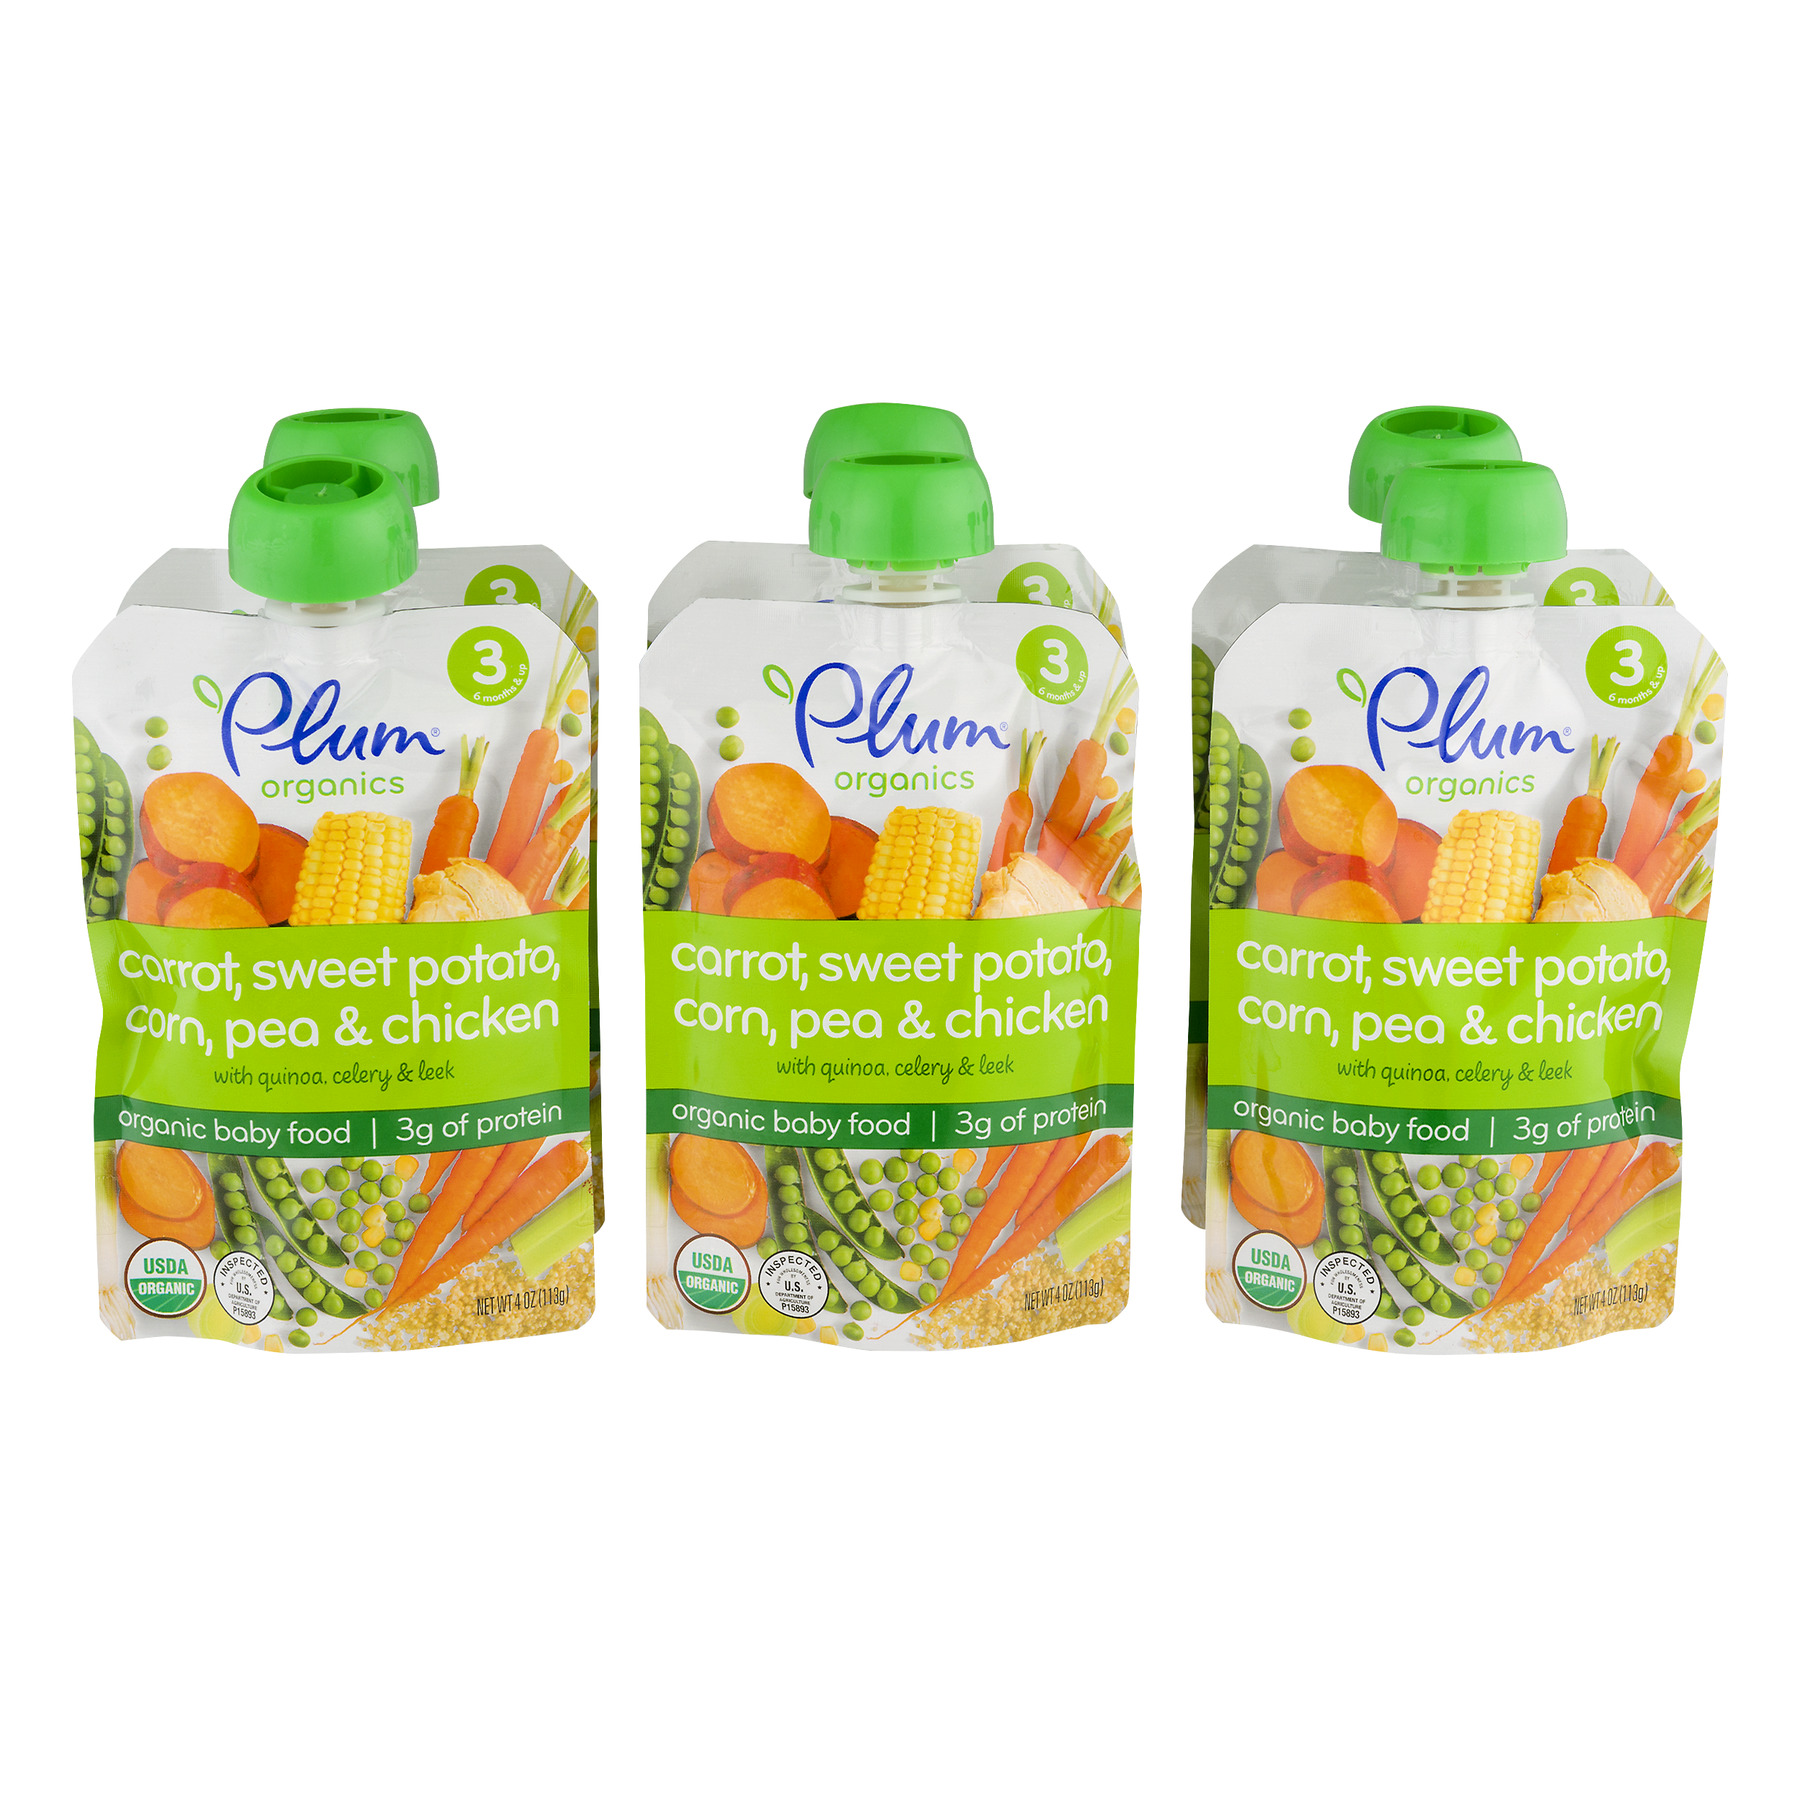 Plum Organics Stage 3 Carrot, Sweet Potato, Corn, Pea & Chicken Baby Food 4 oz. Pouch (Pack of 6)